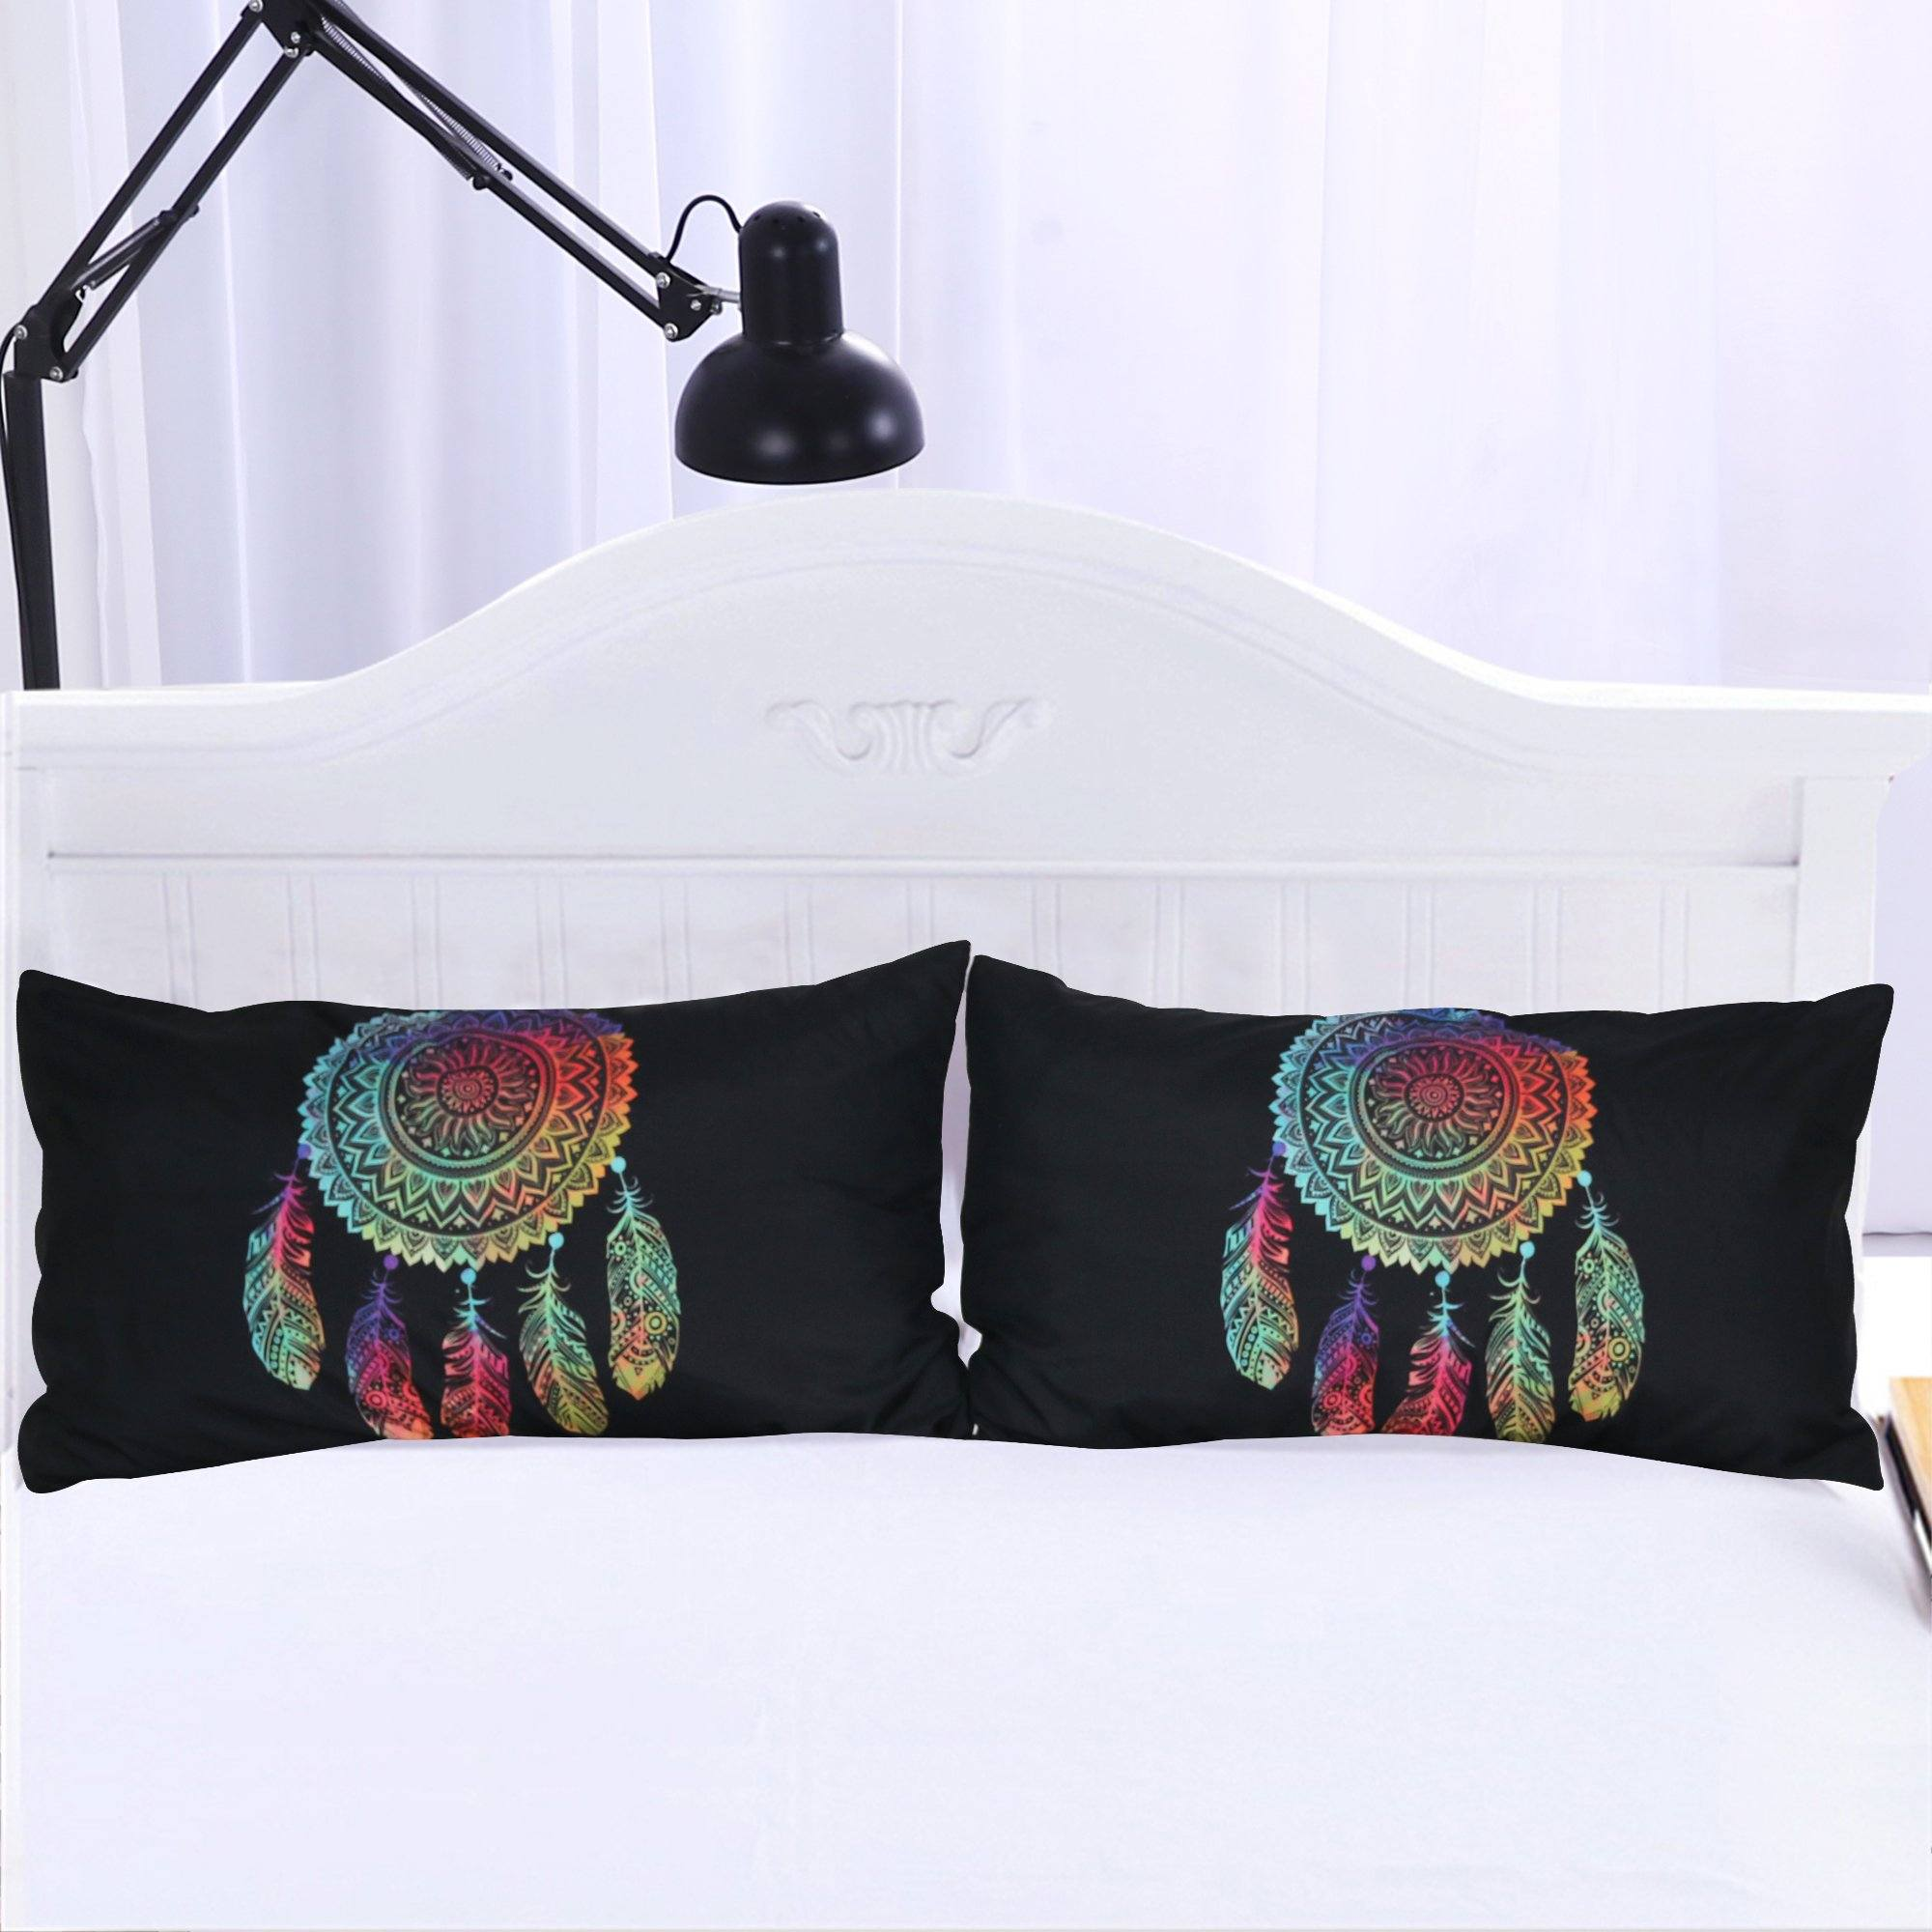 Rainbow Dreamcatcher Pillowcases- Set of 2